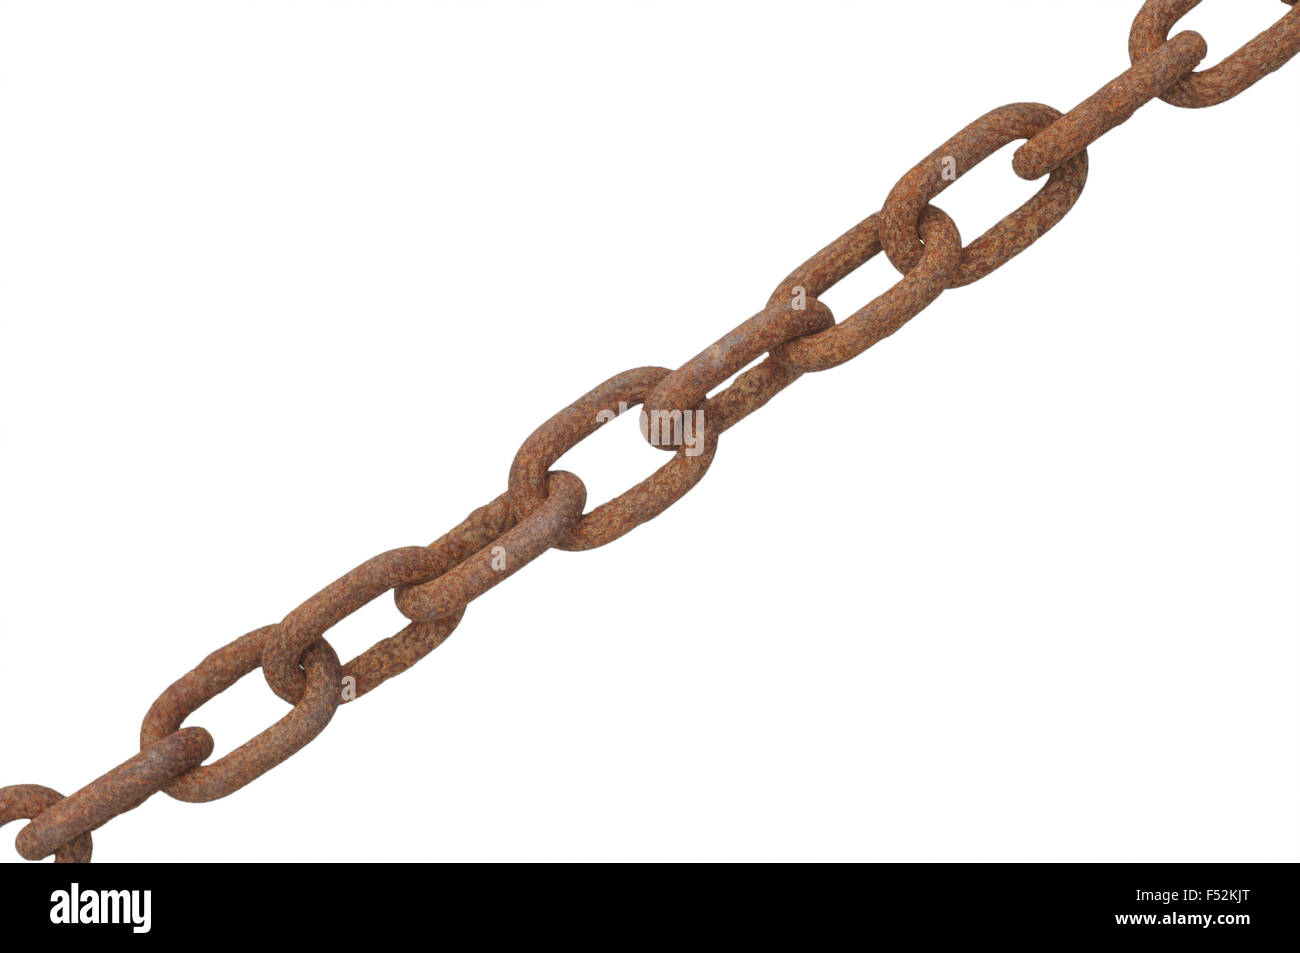 Close up of a Dusty Chain - Stock Image